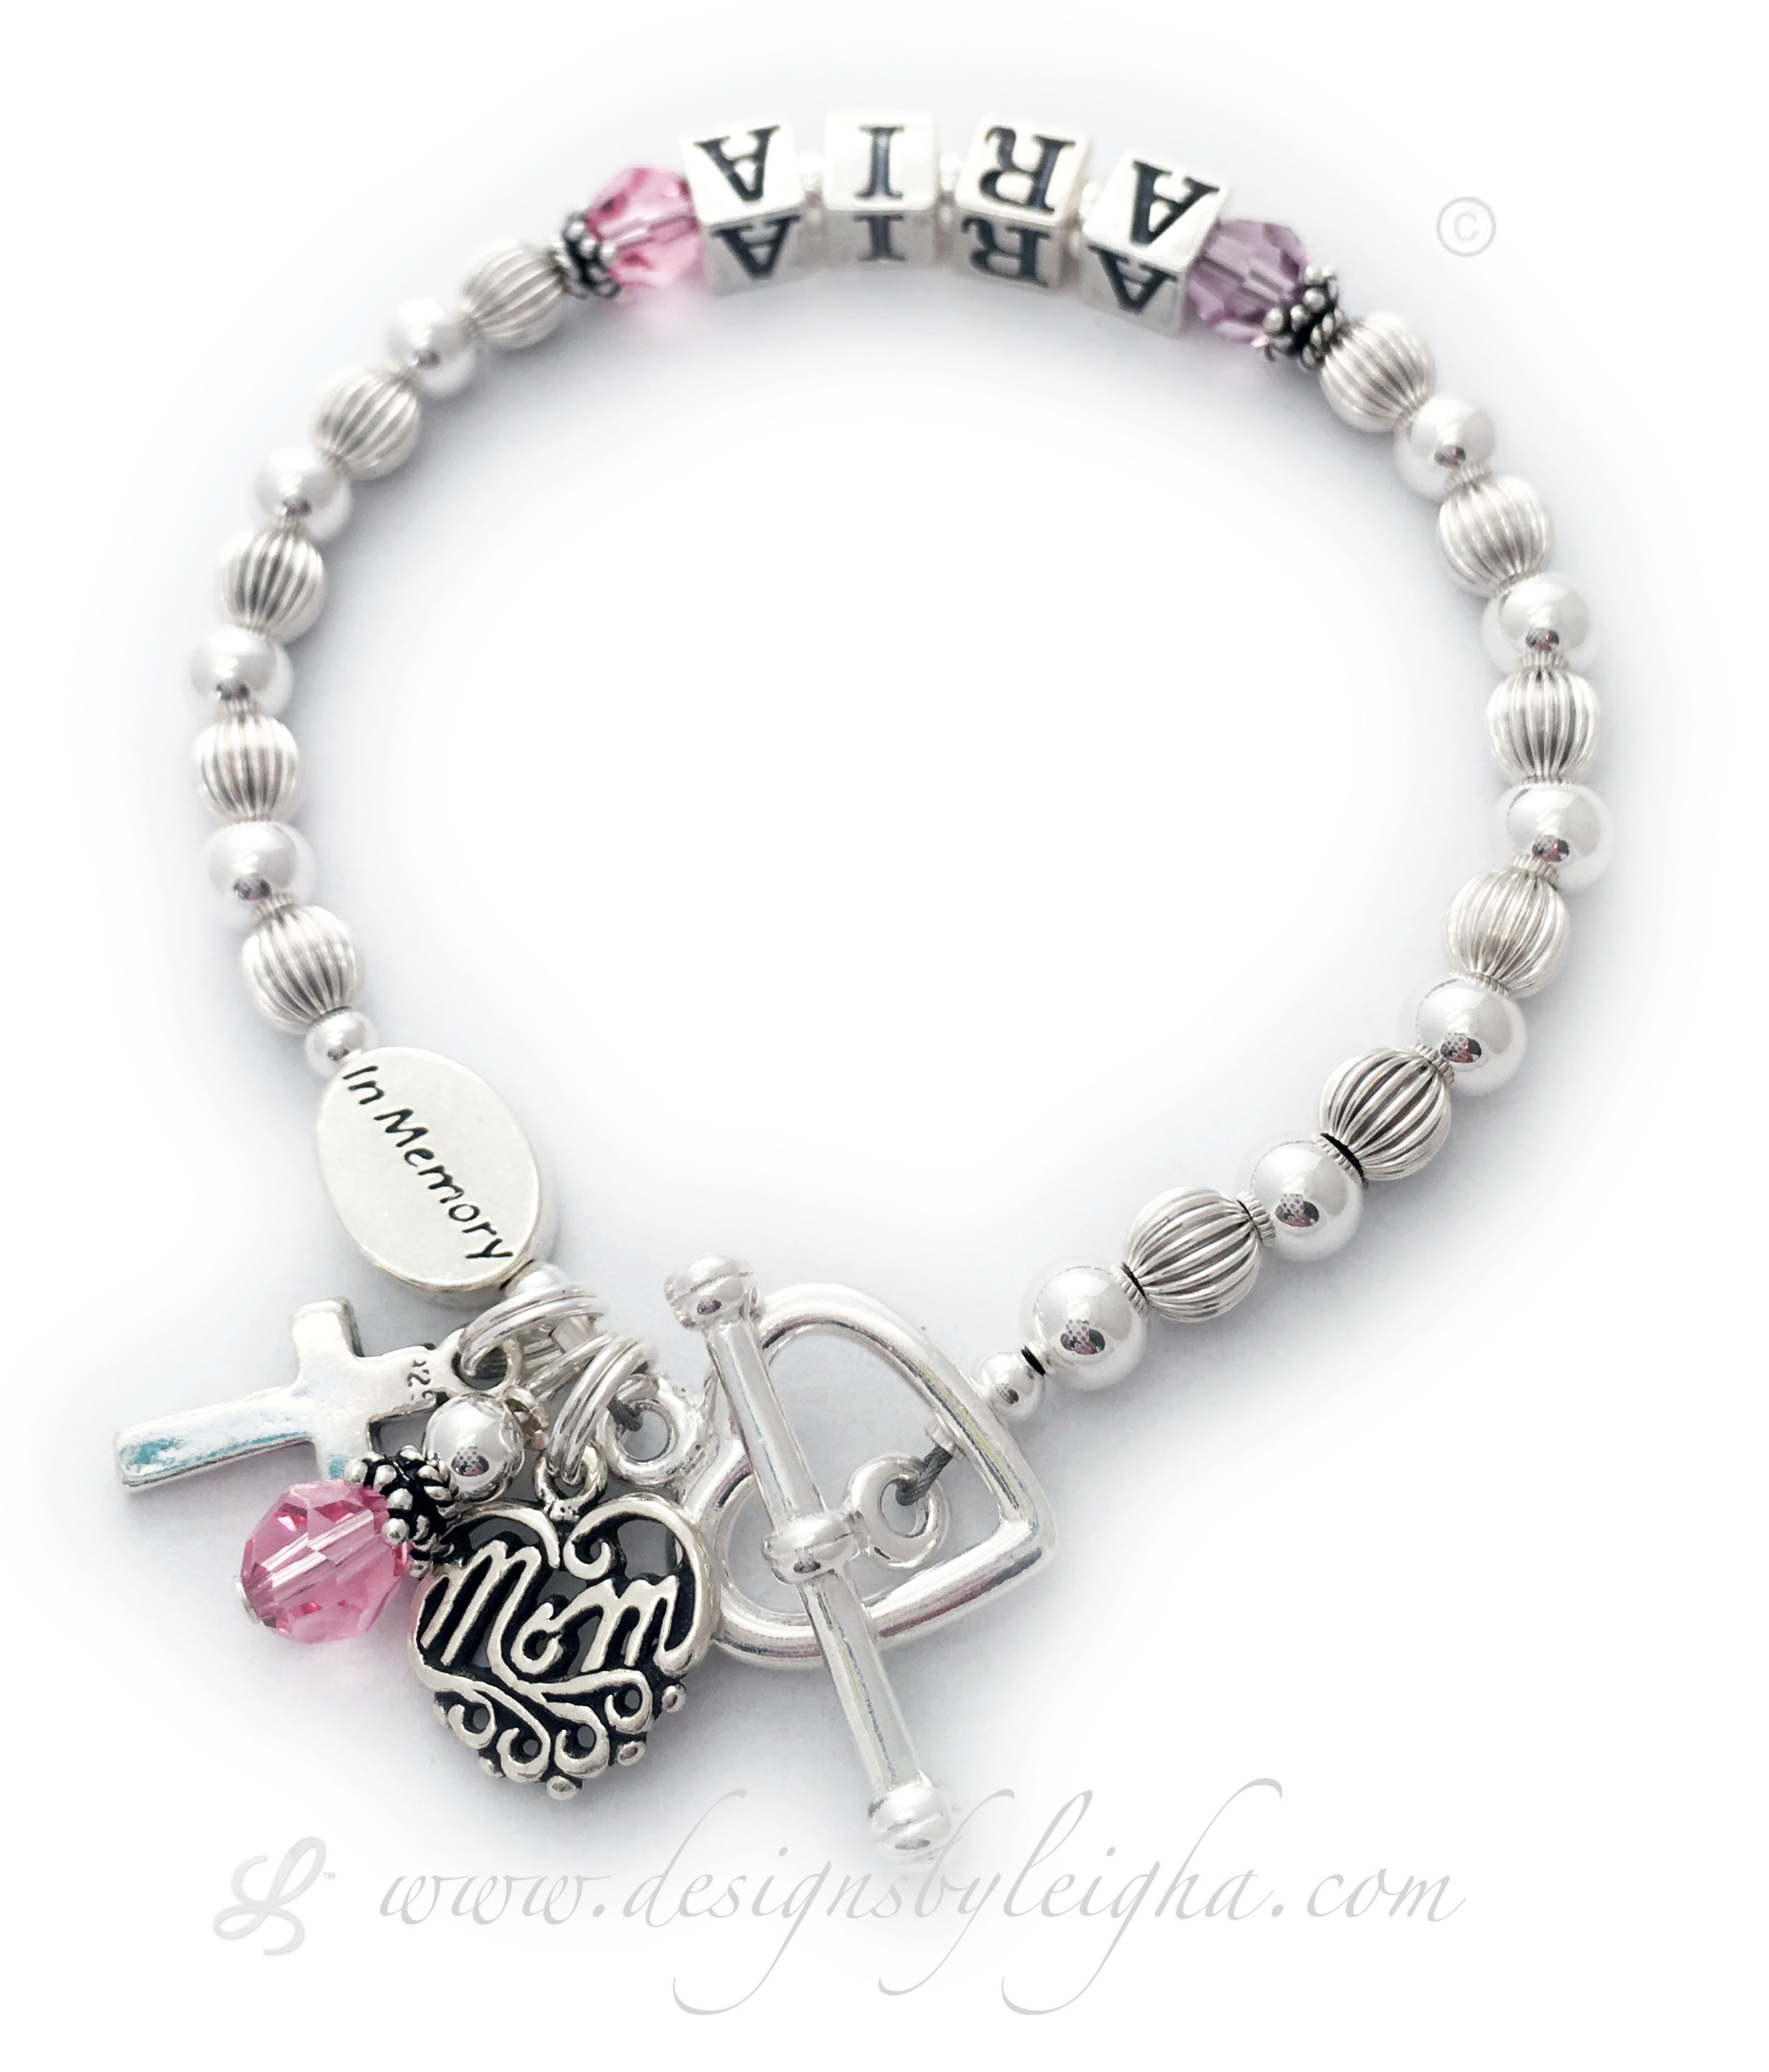 This In Memory Bracelet comes with an IN MEMORY bead and a crystal dangle. They upgraded the free toggle clasp to a Heart Toggle Clasp and added 2 additional charms: Simple Cross Charm and a Filigree Mom Charm. You choose the name and colors of crystals. They chose ARIA and pink for breast cancer.